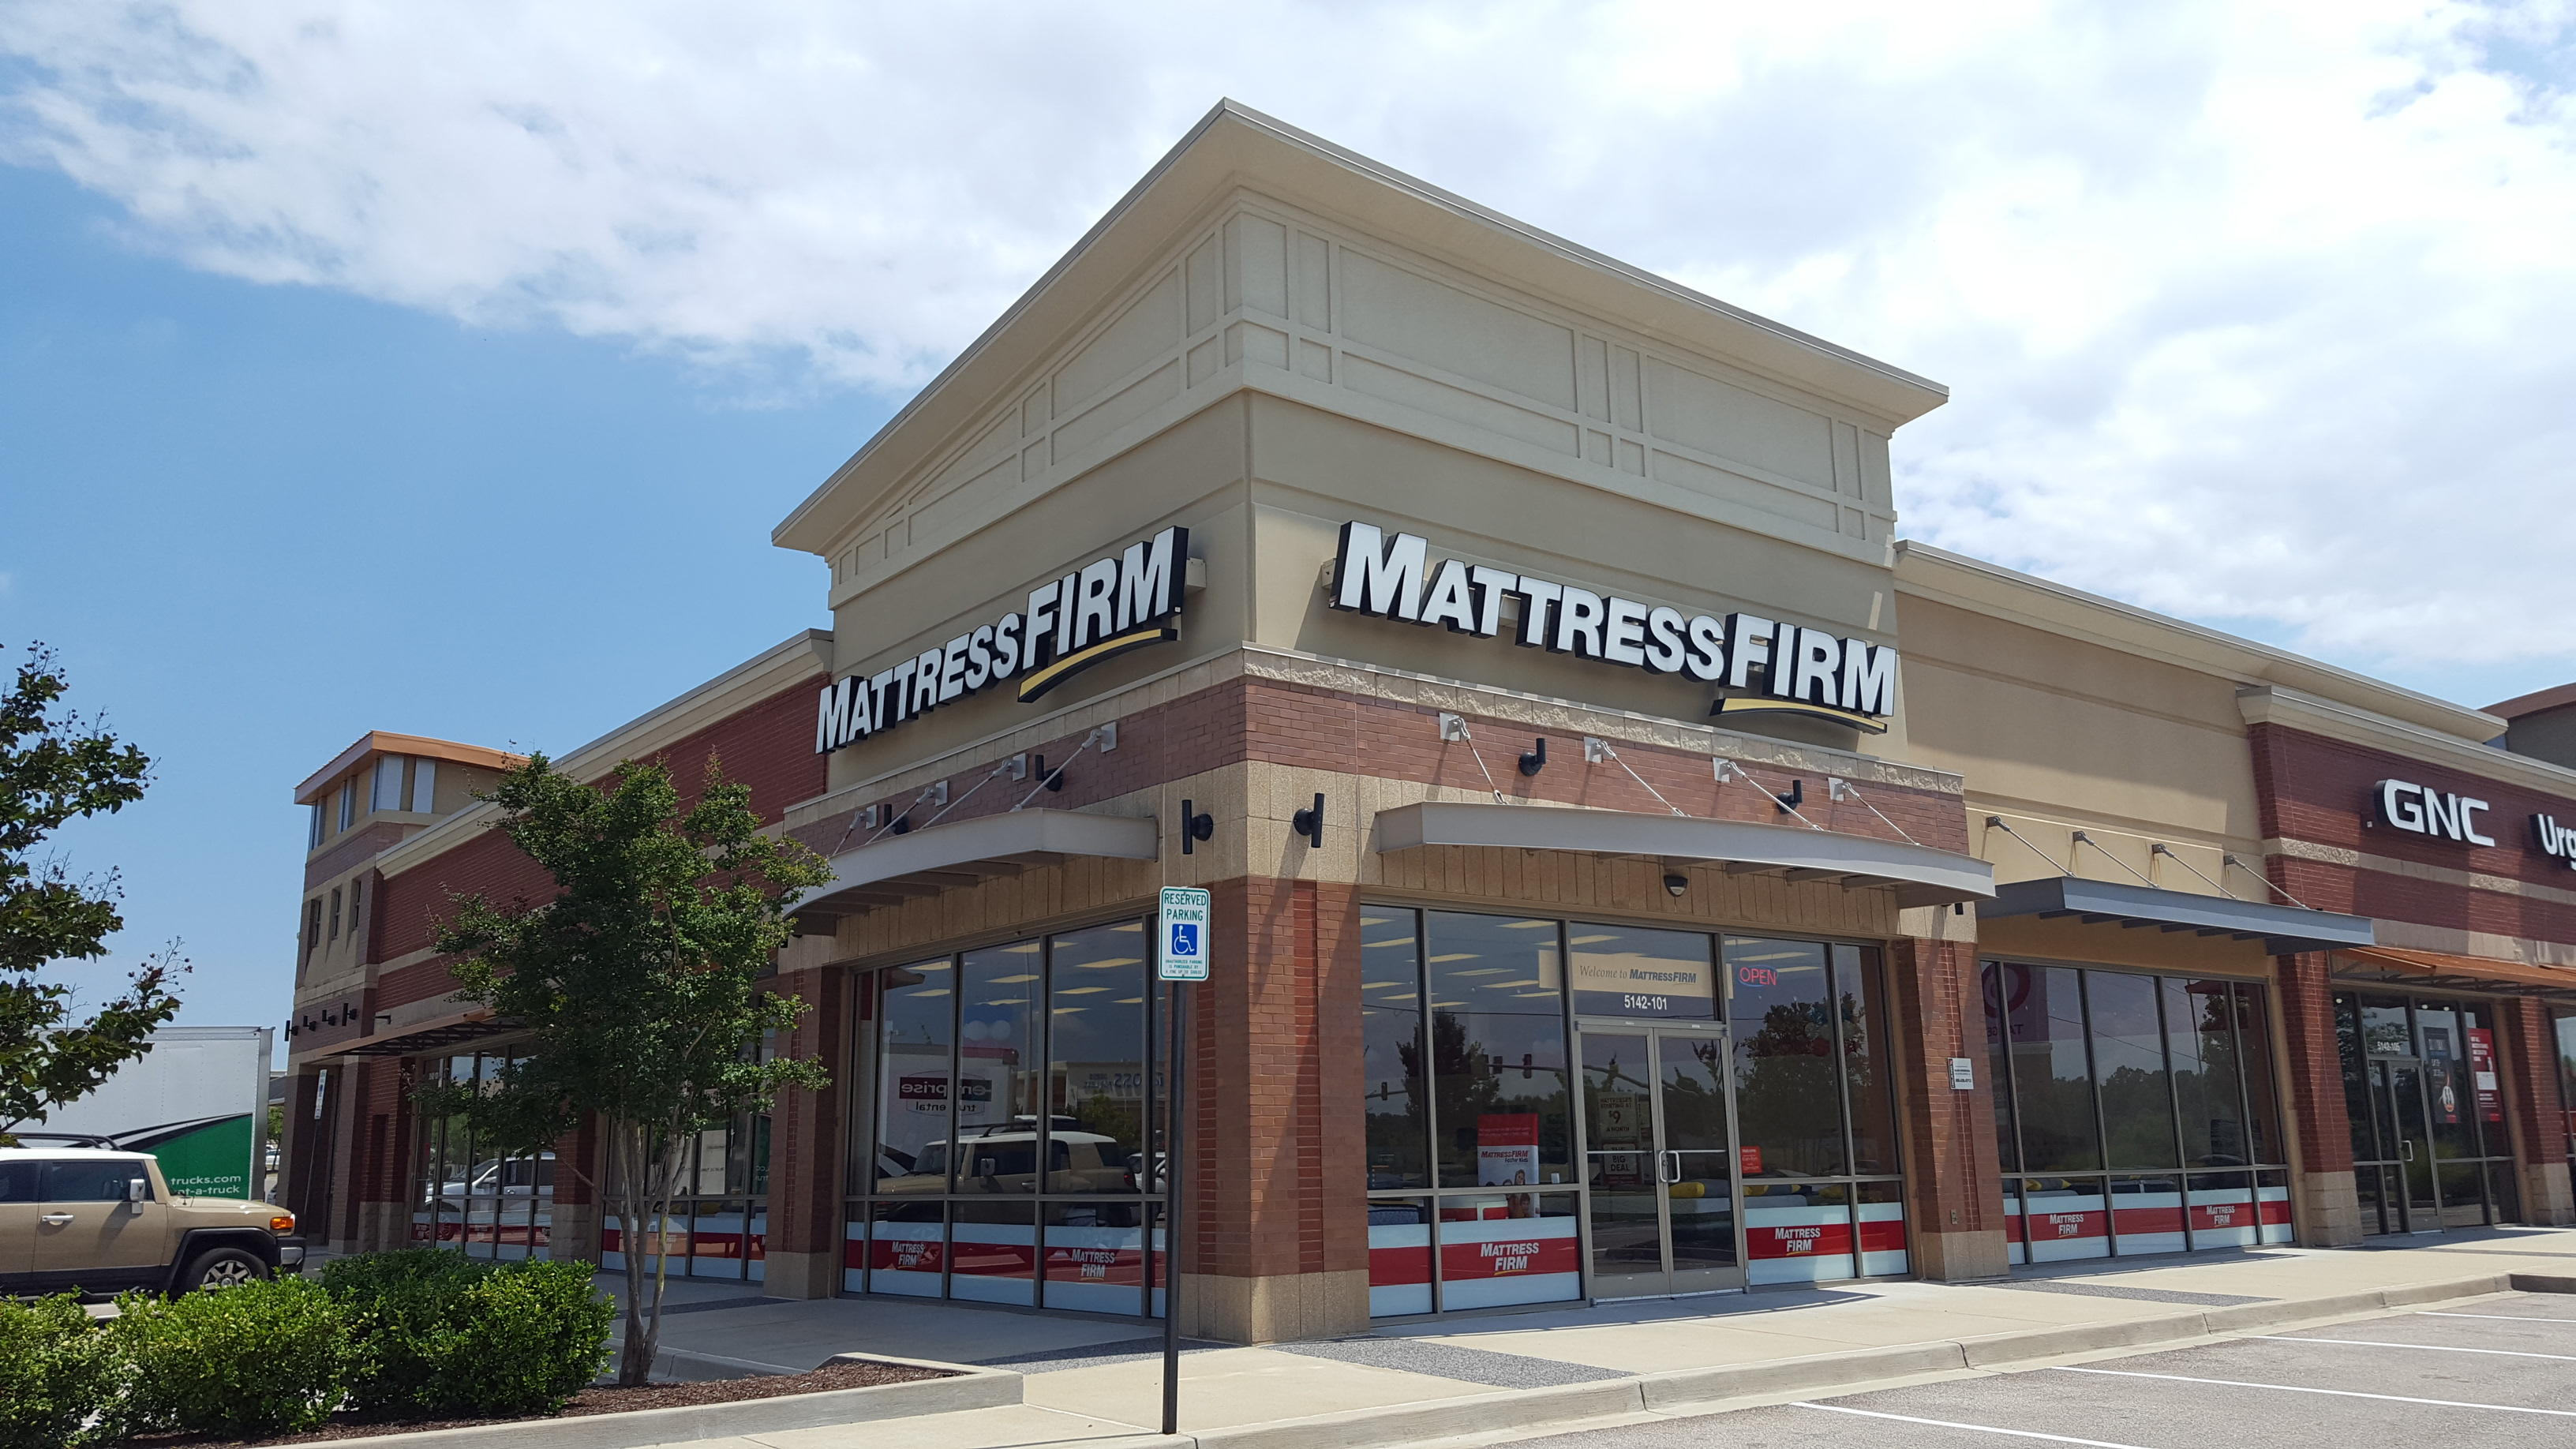 Mattress Firm Wedge Olive Branch image 2